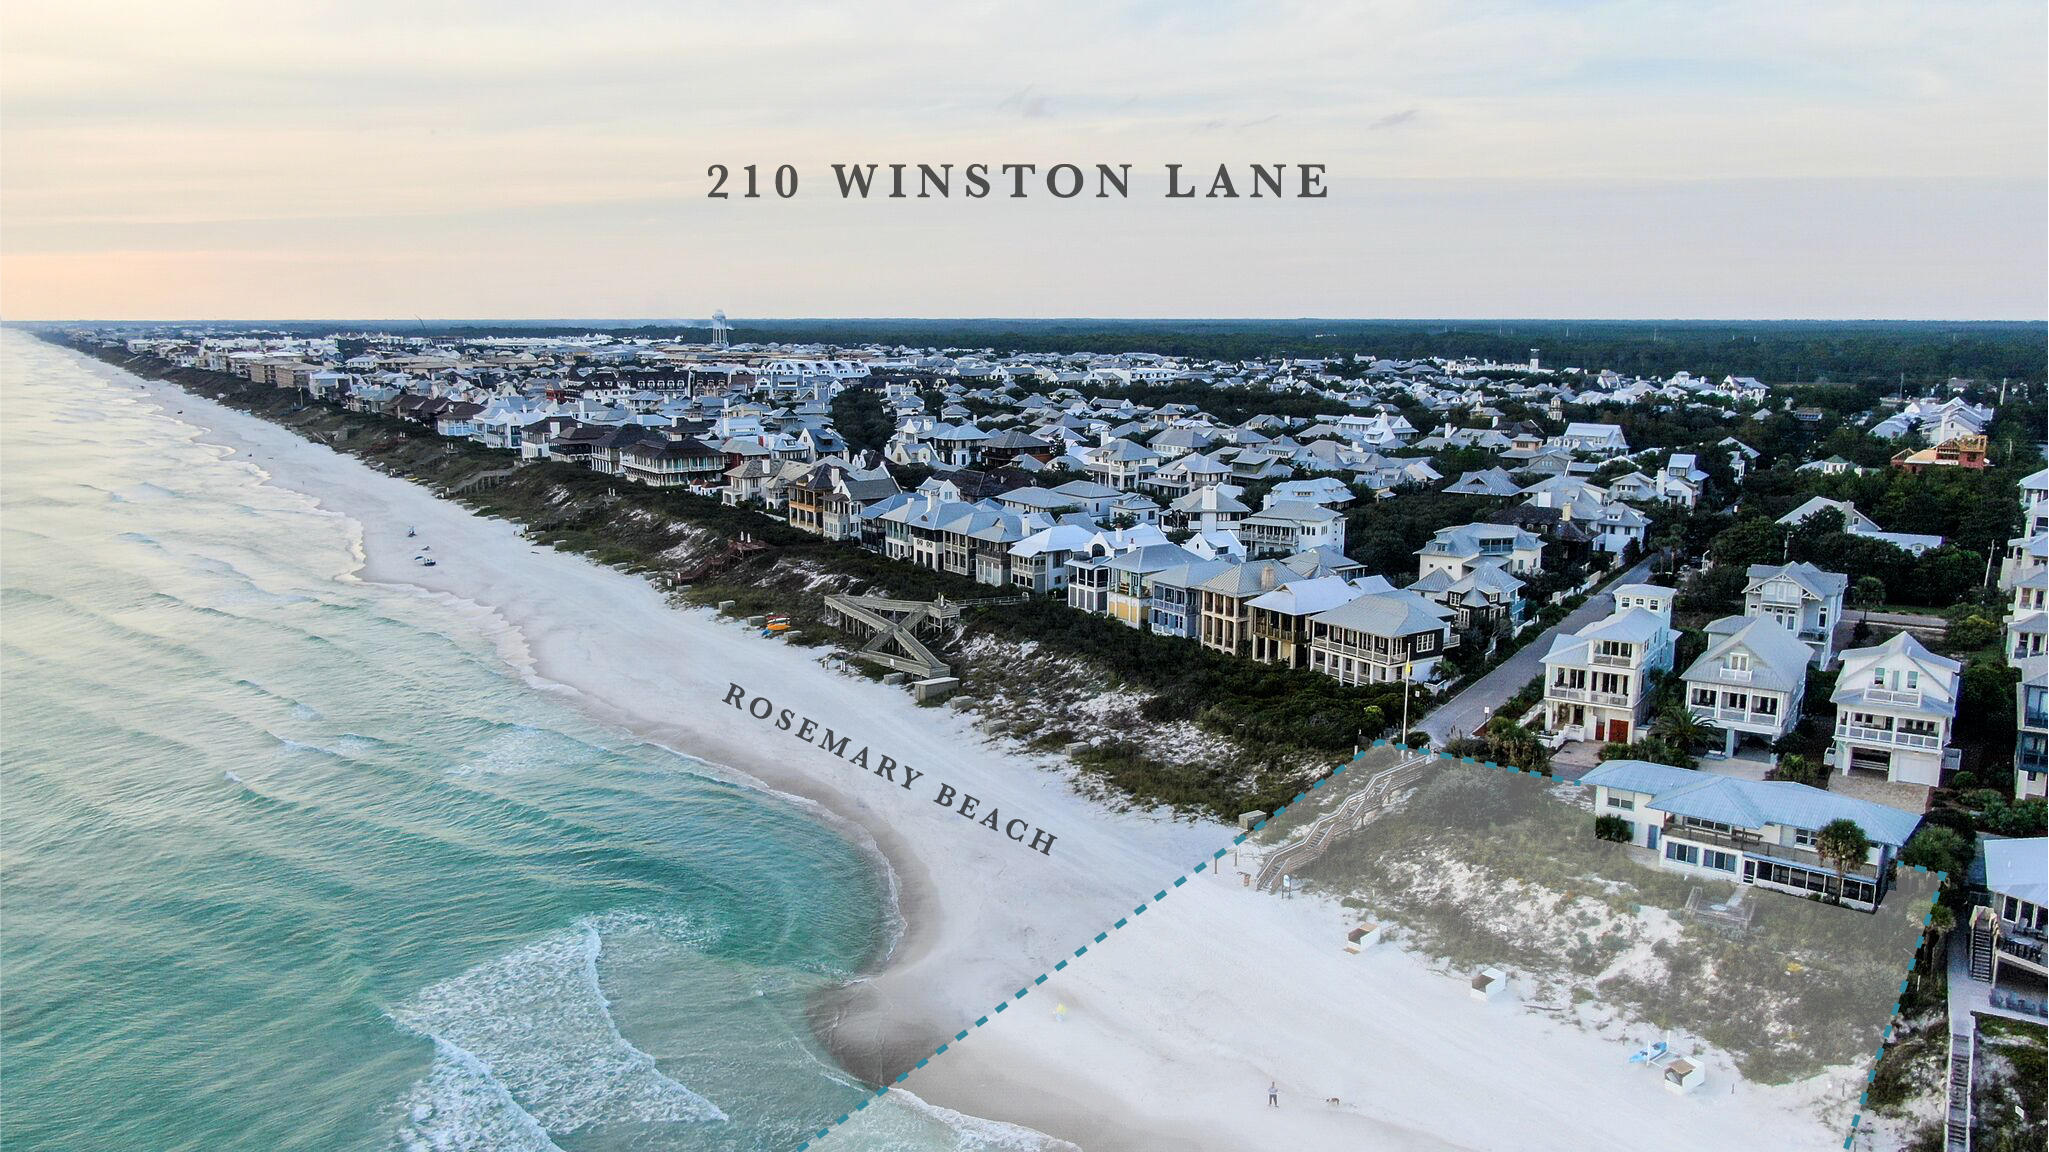 210 Winston Ln Inlet Beach Fl 32461 Mls 834944 Coldwell Banker